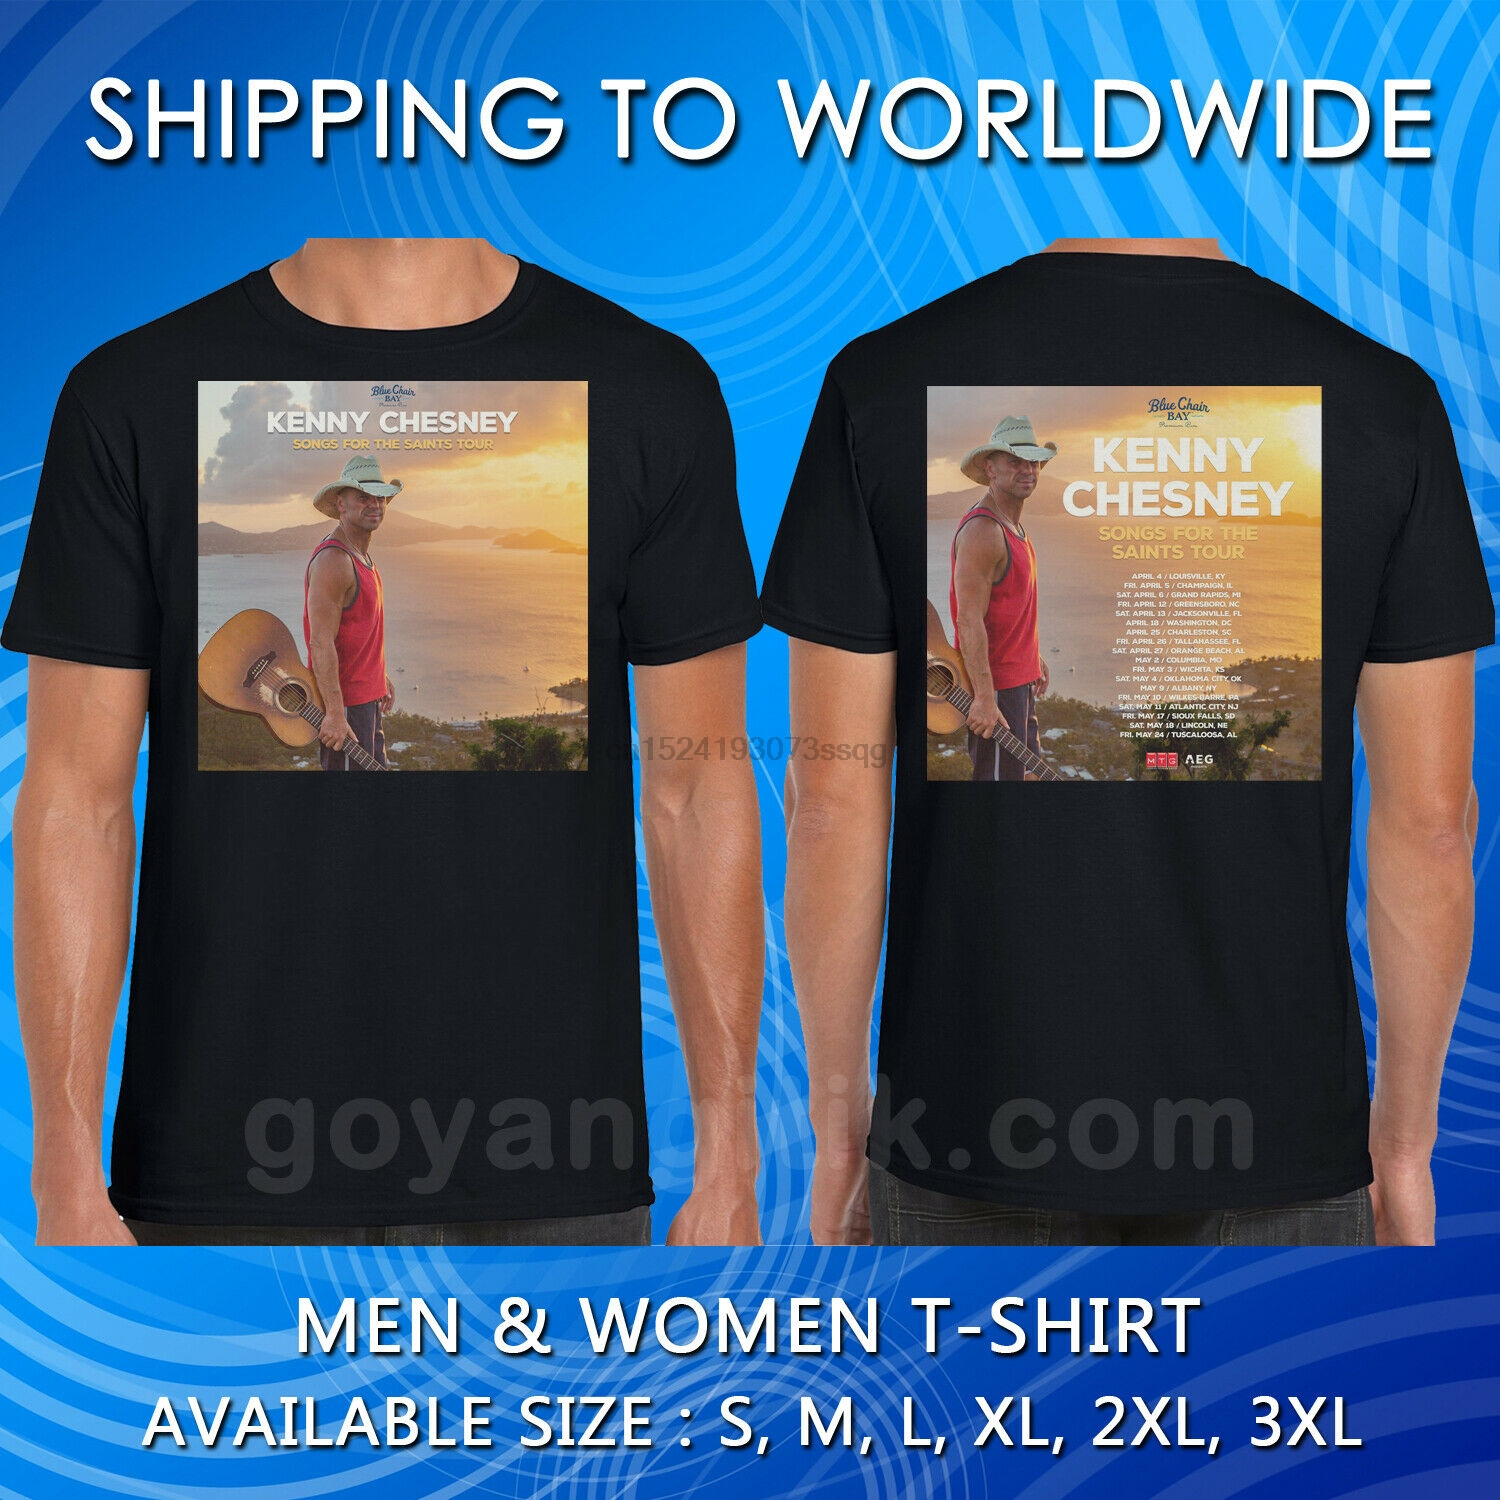 Kenny Chesney Tour 2019 Date T SHIRT SIZE S-5XL Brand New !!